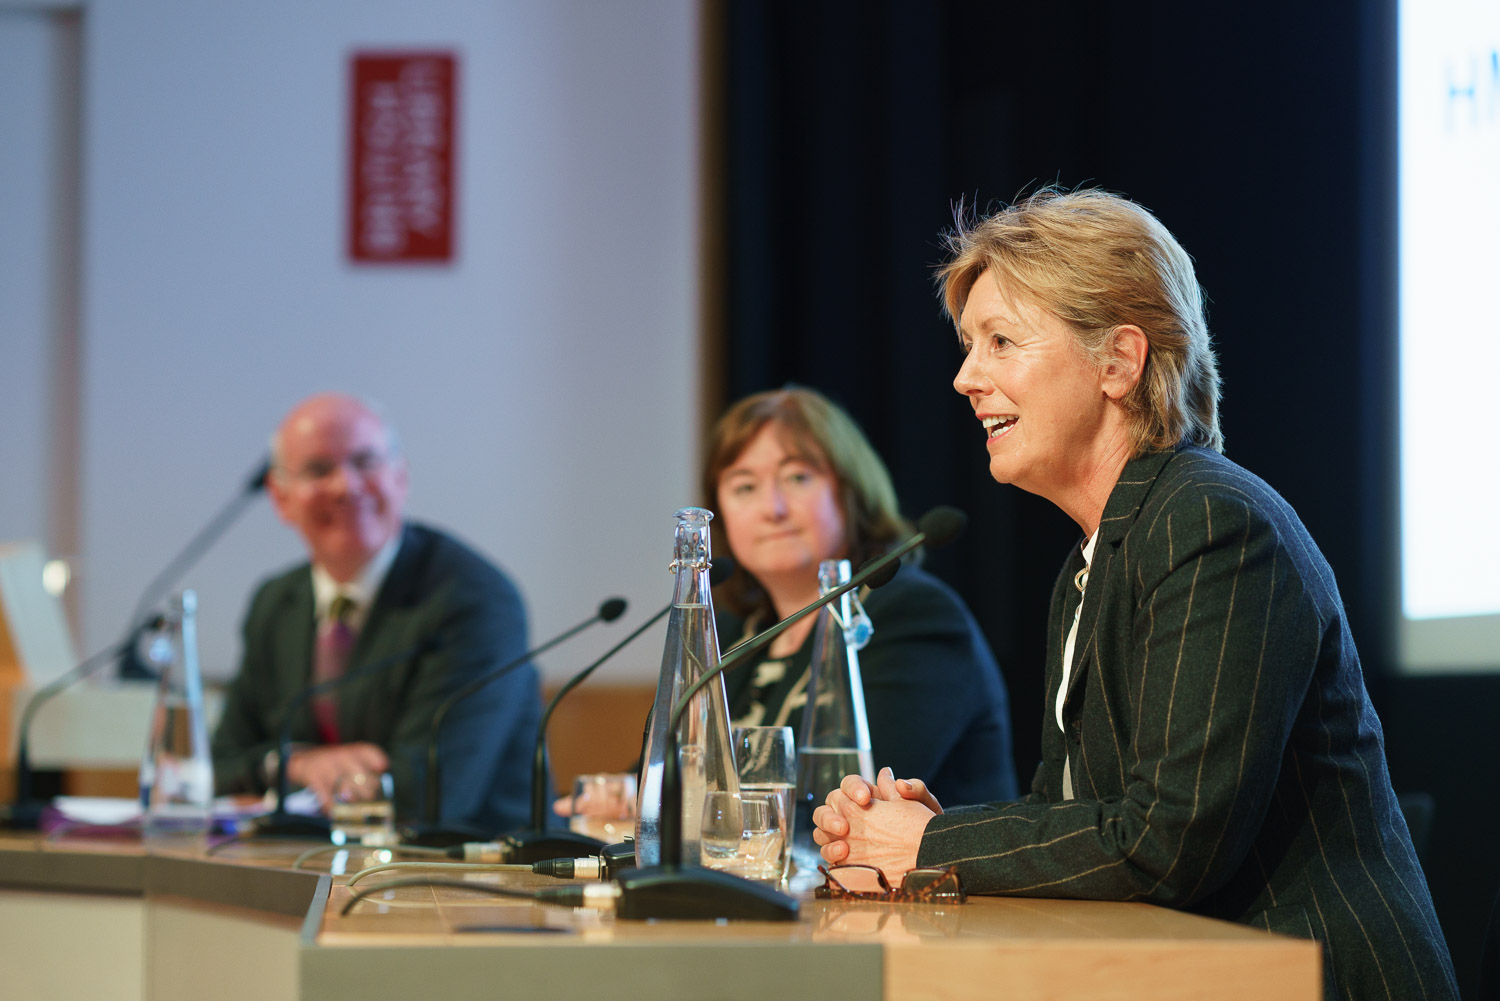 Brief: Photograph of a Panel Debate. Venue: The British Library.